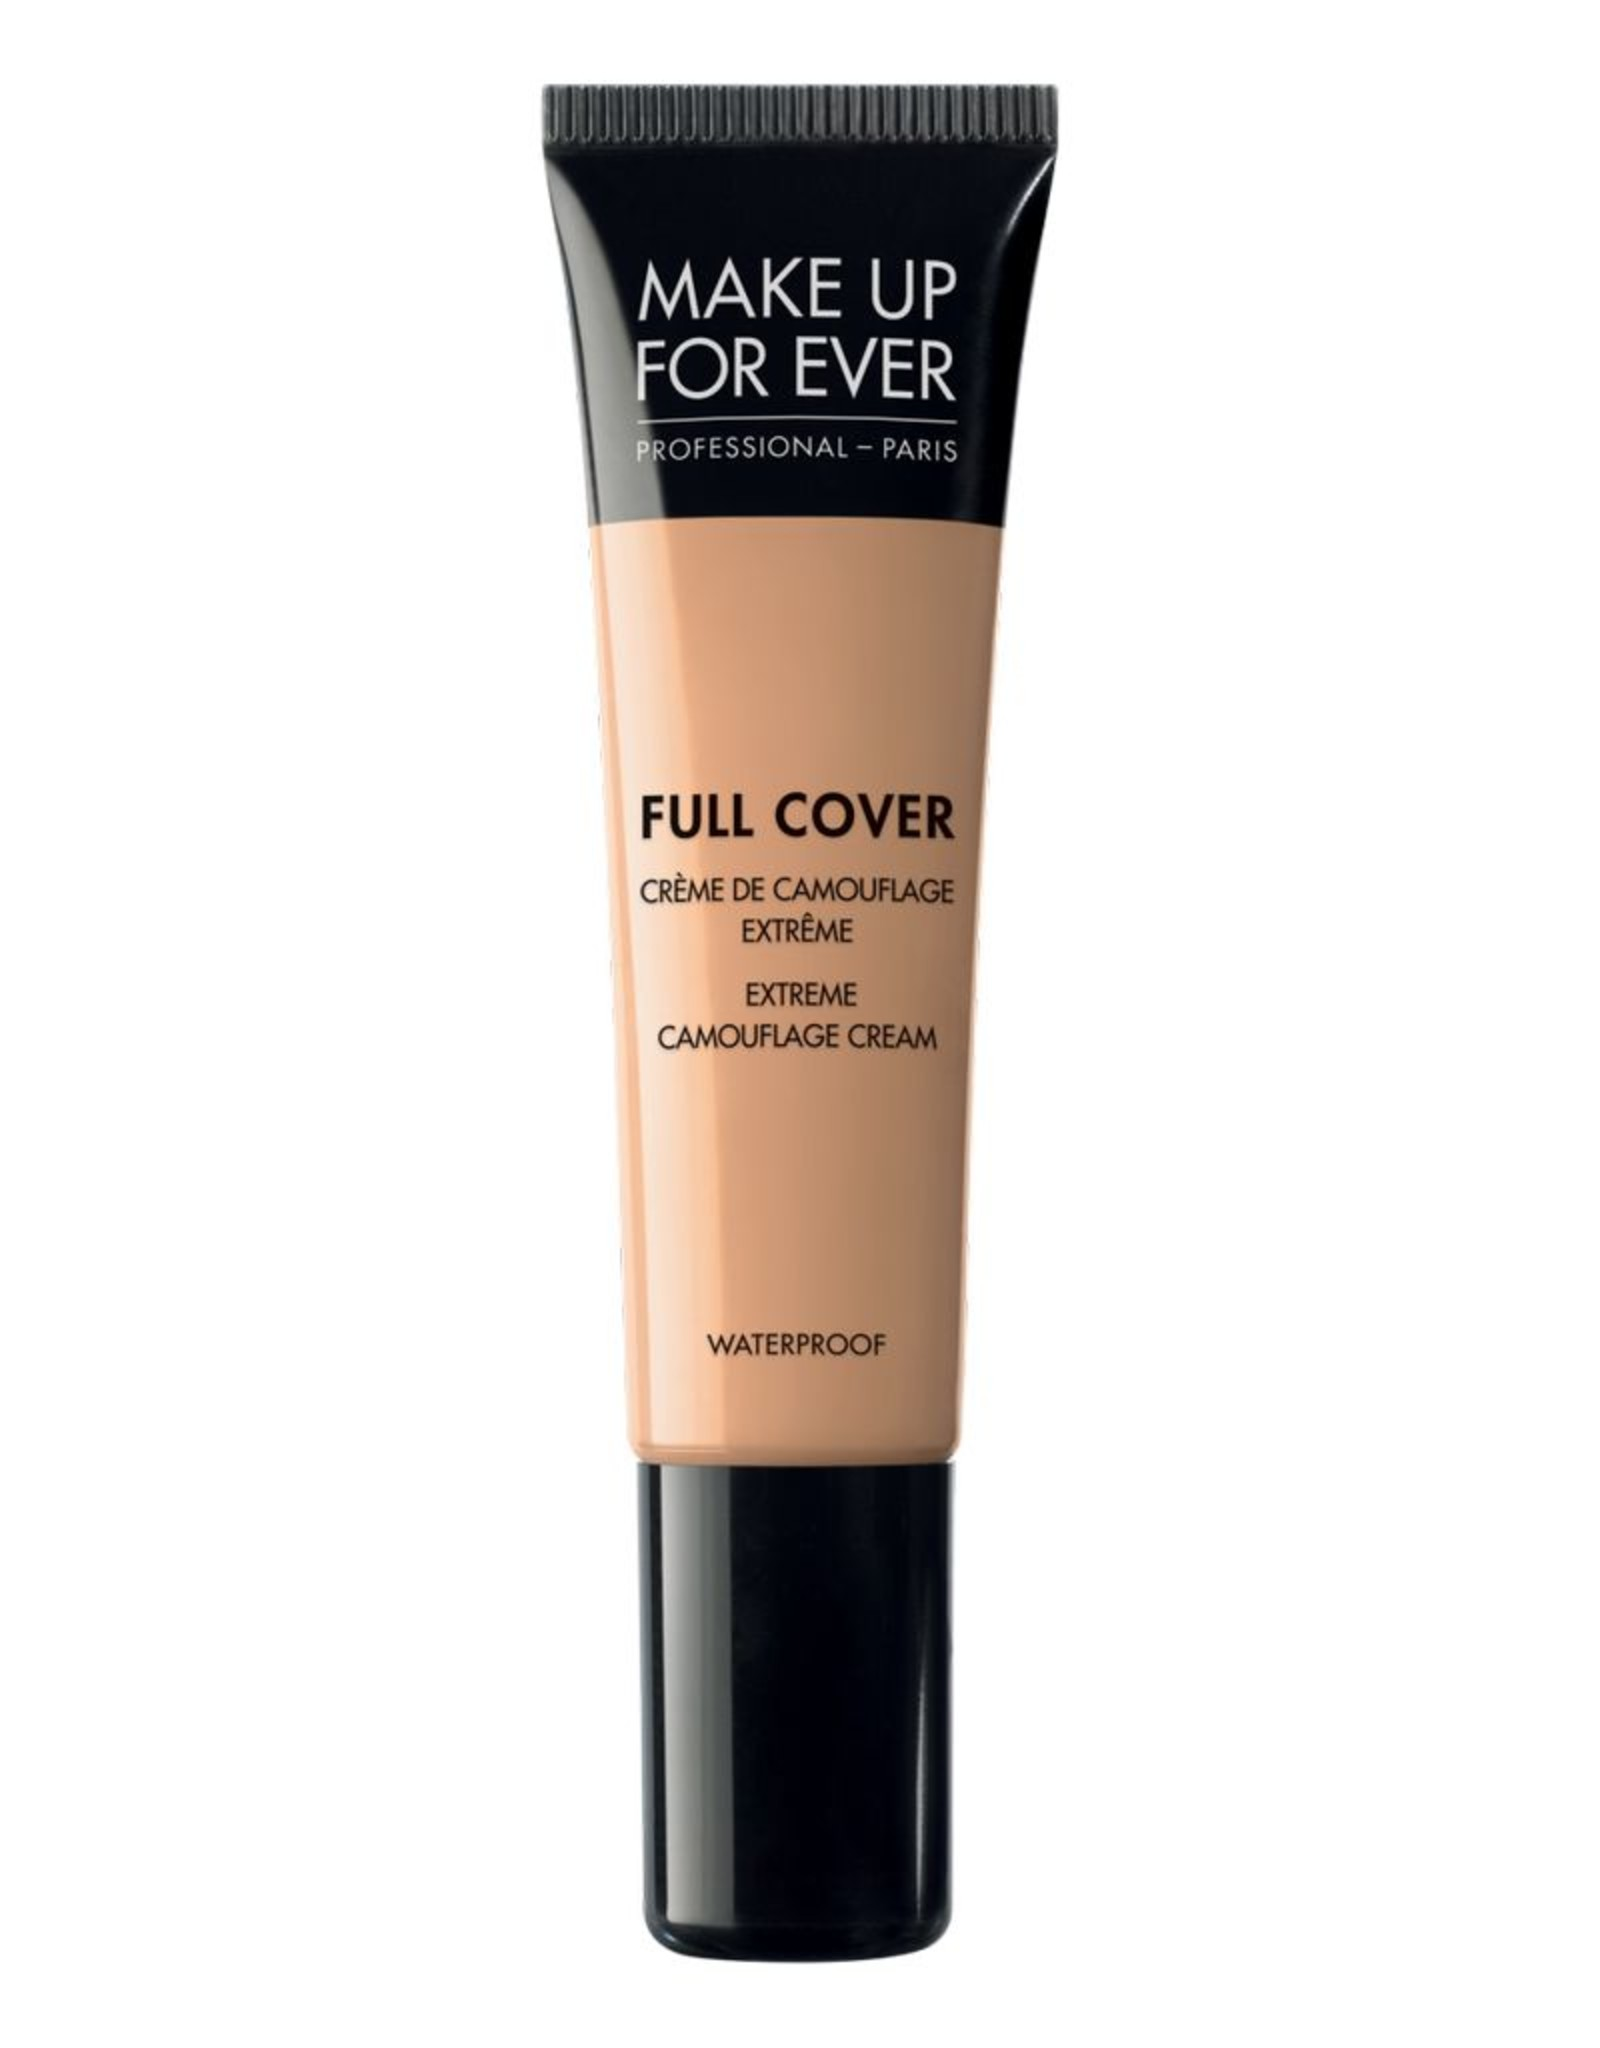 MUFE FULL COVER 15ml N 10  beige dore/ golden beige